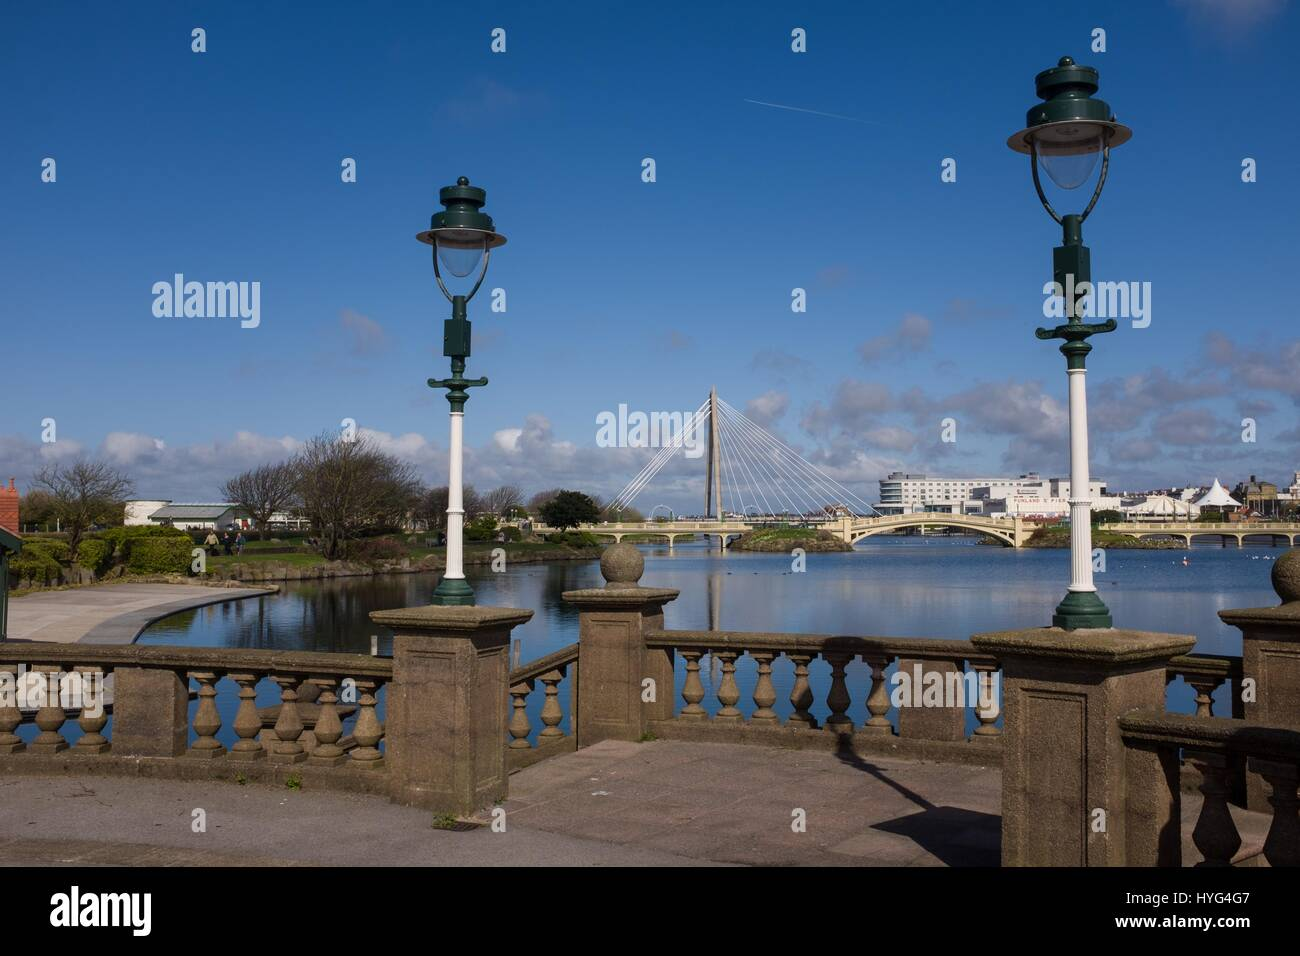 Marine Lake in Southport with Marine Way suspension bridge in background - Stock Image